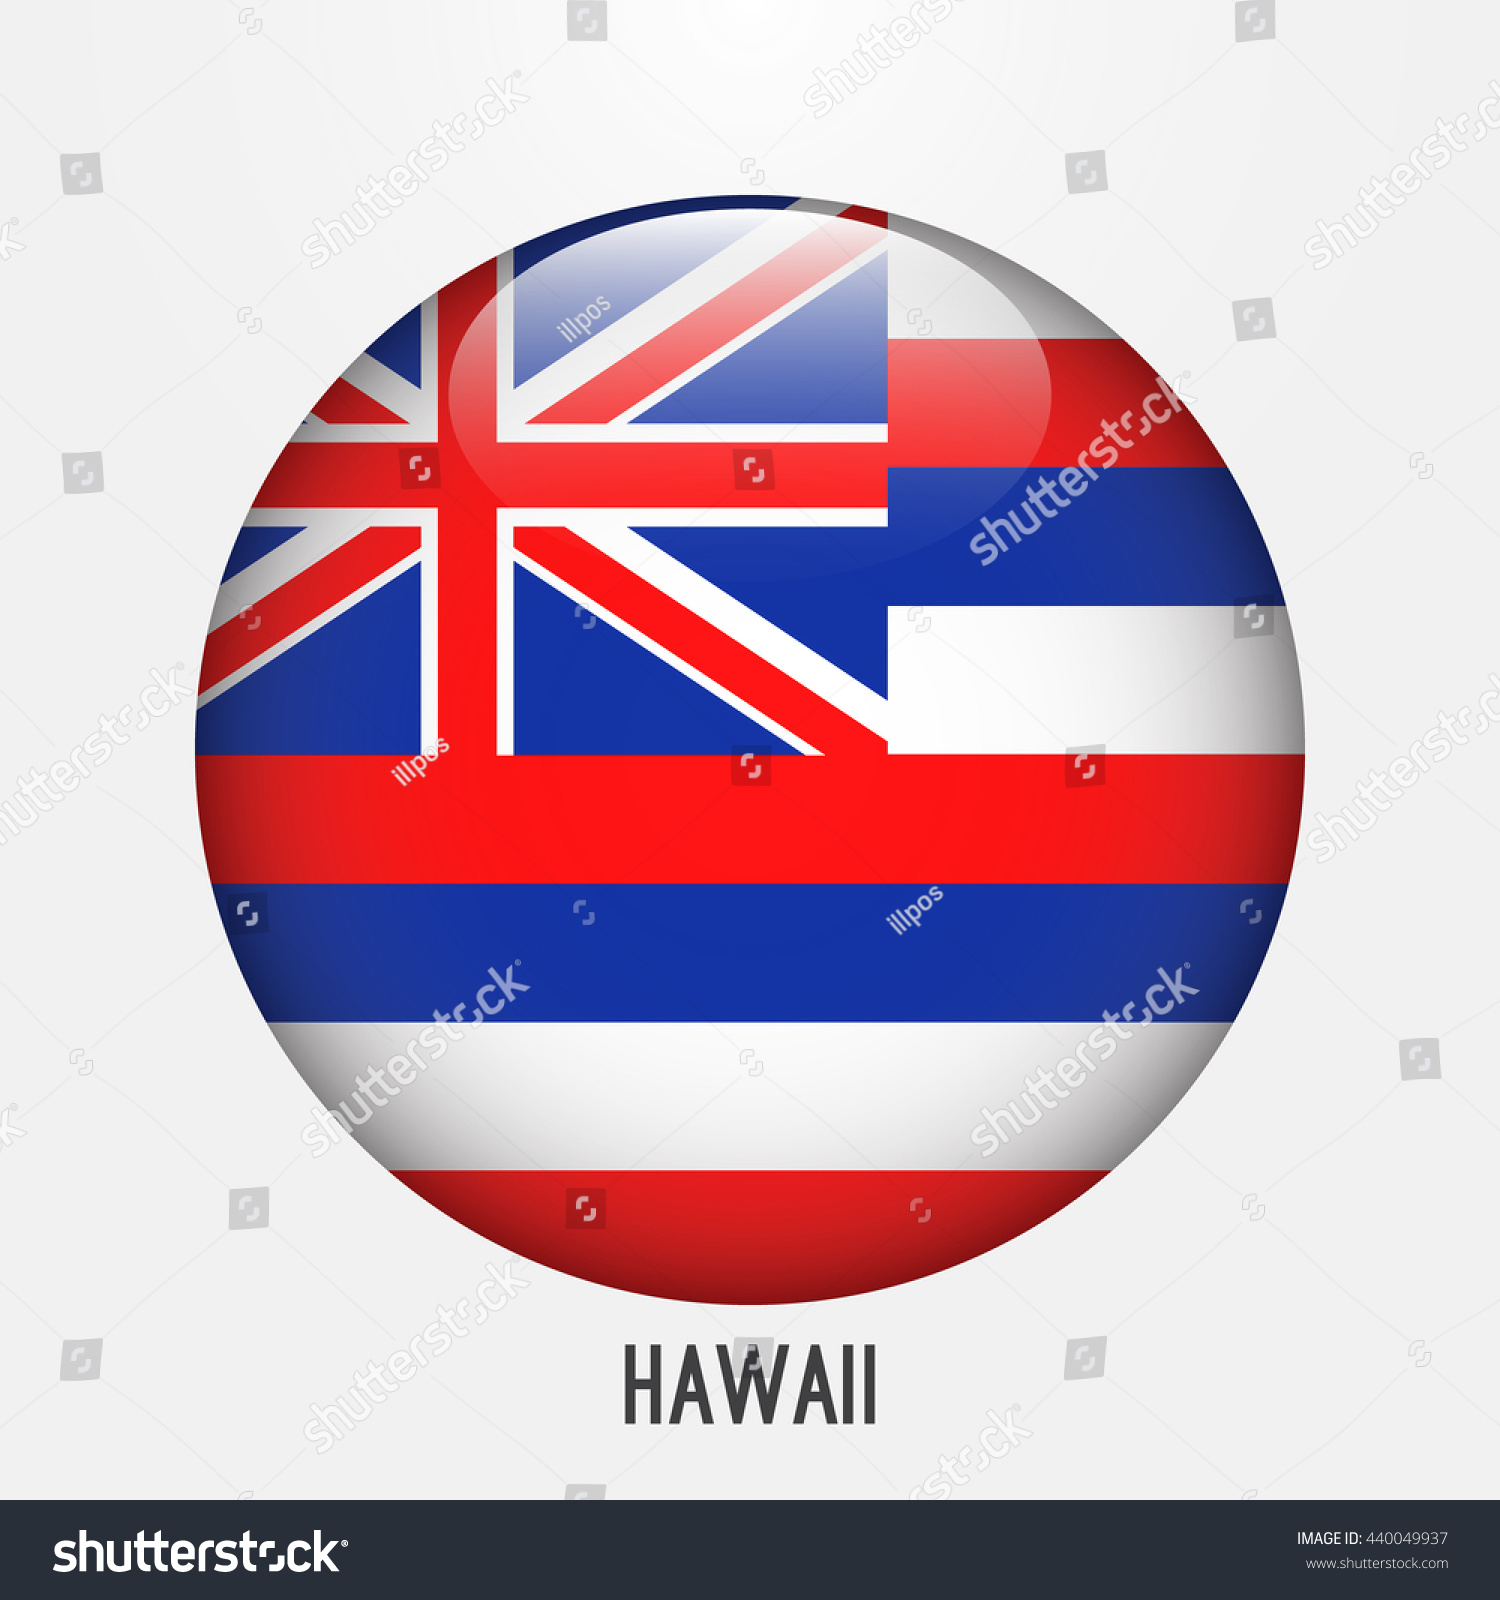 Hawaii Flag In Circle Shape Transparentglossyglass Button